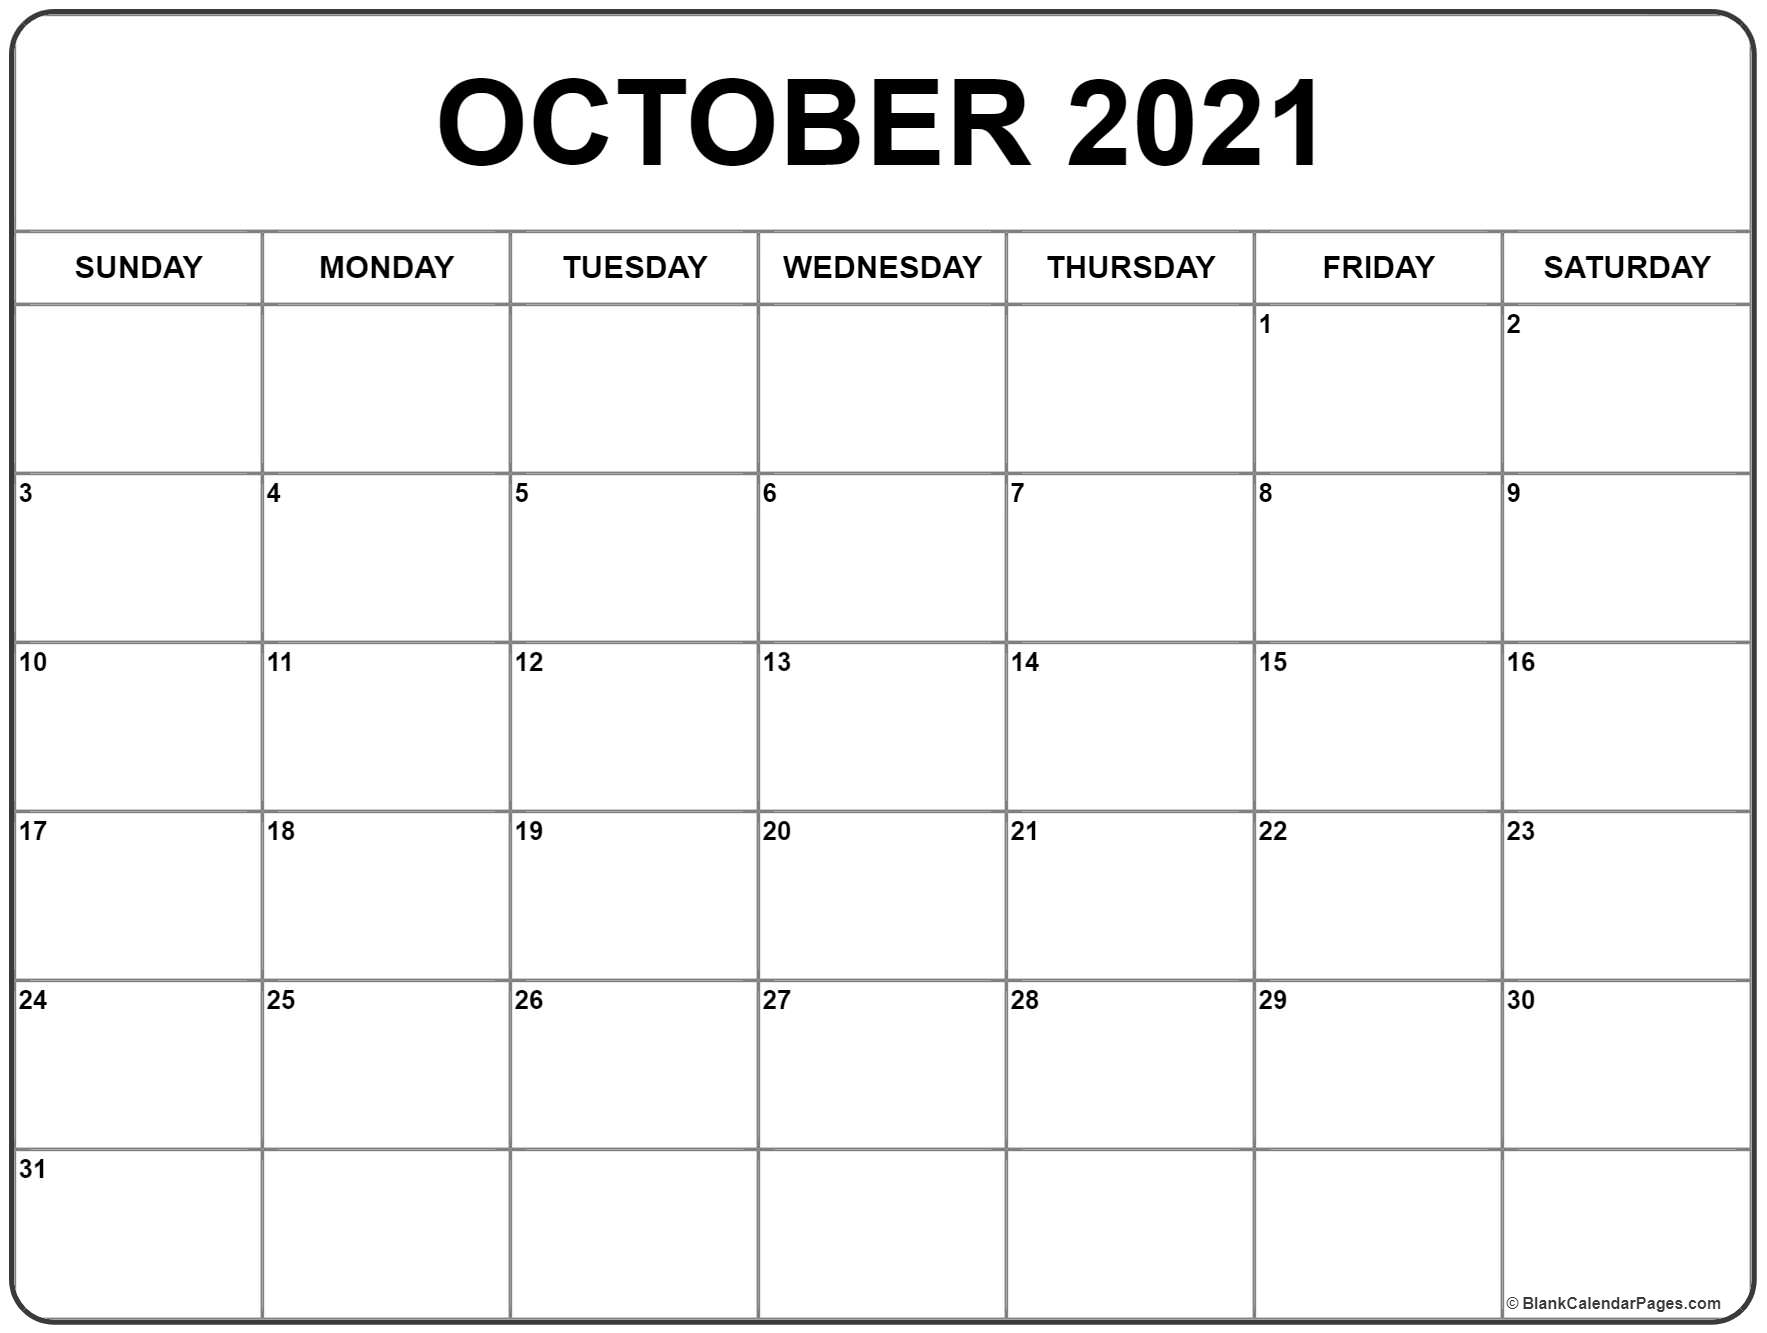 graphic regarding October Calendar Printable identify Oct 2019 calendar cost-free printable month to month calendars